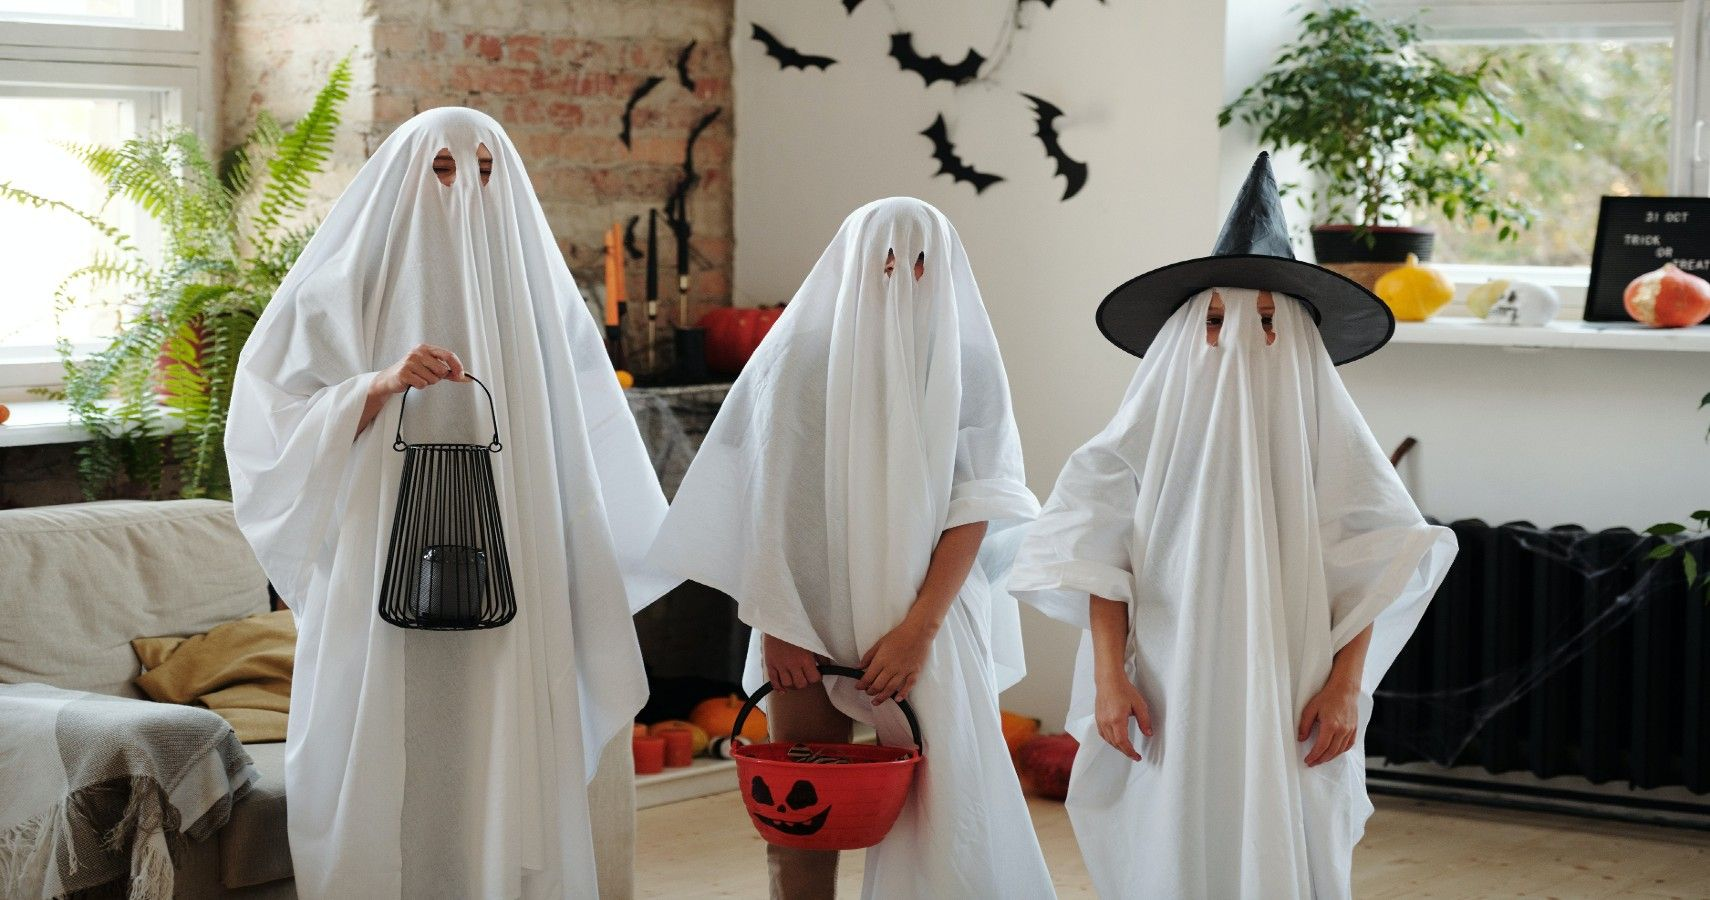 How A Parent's Halloween Fears Can Impact Their Children